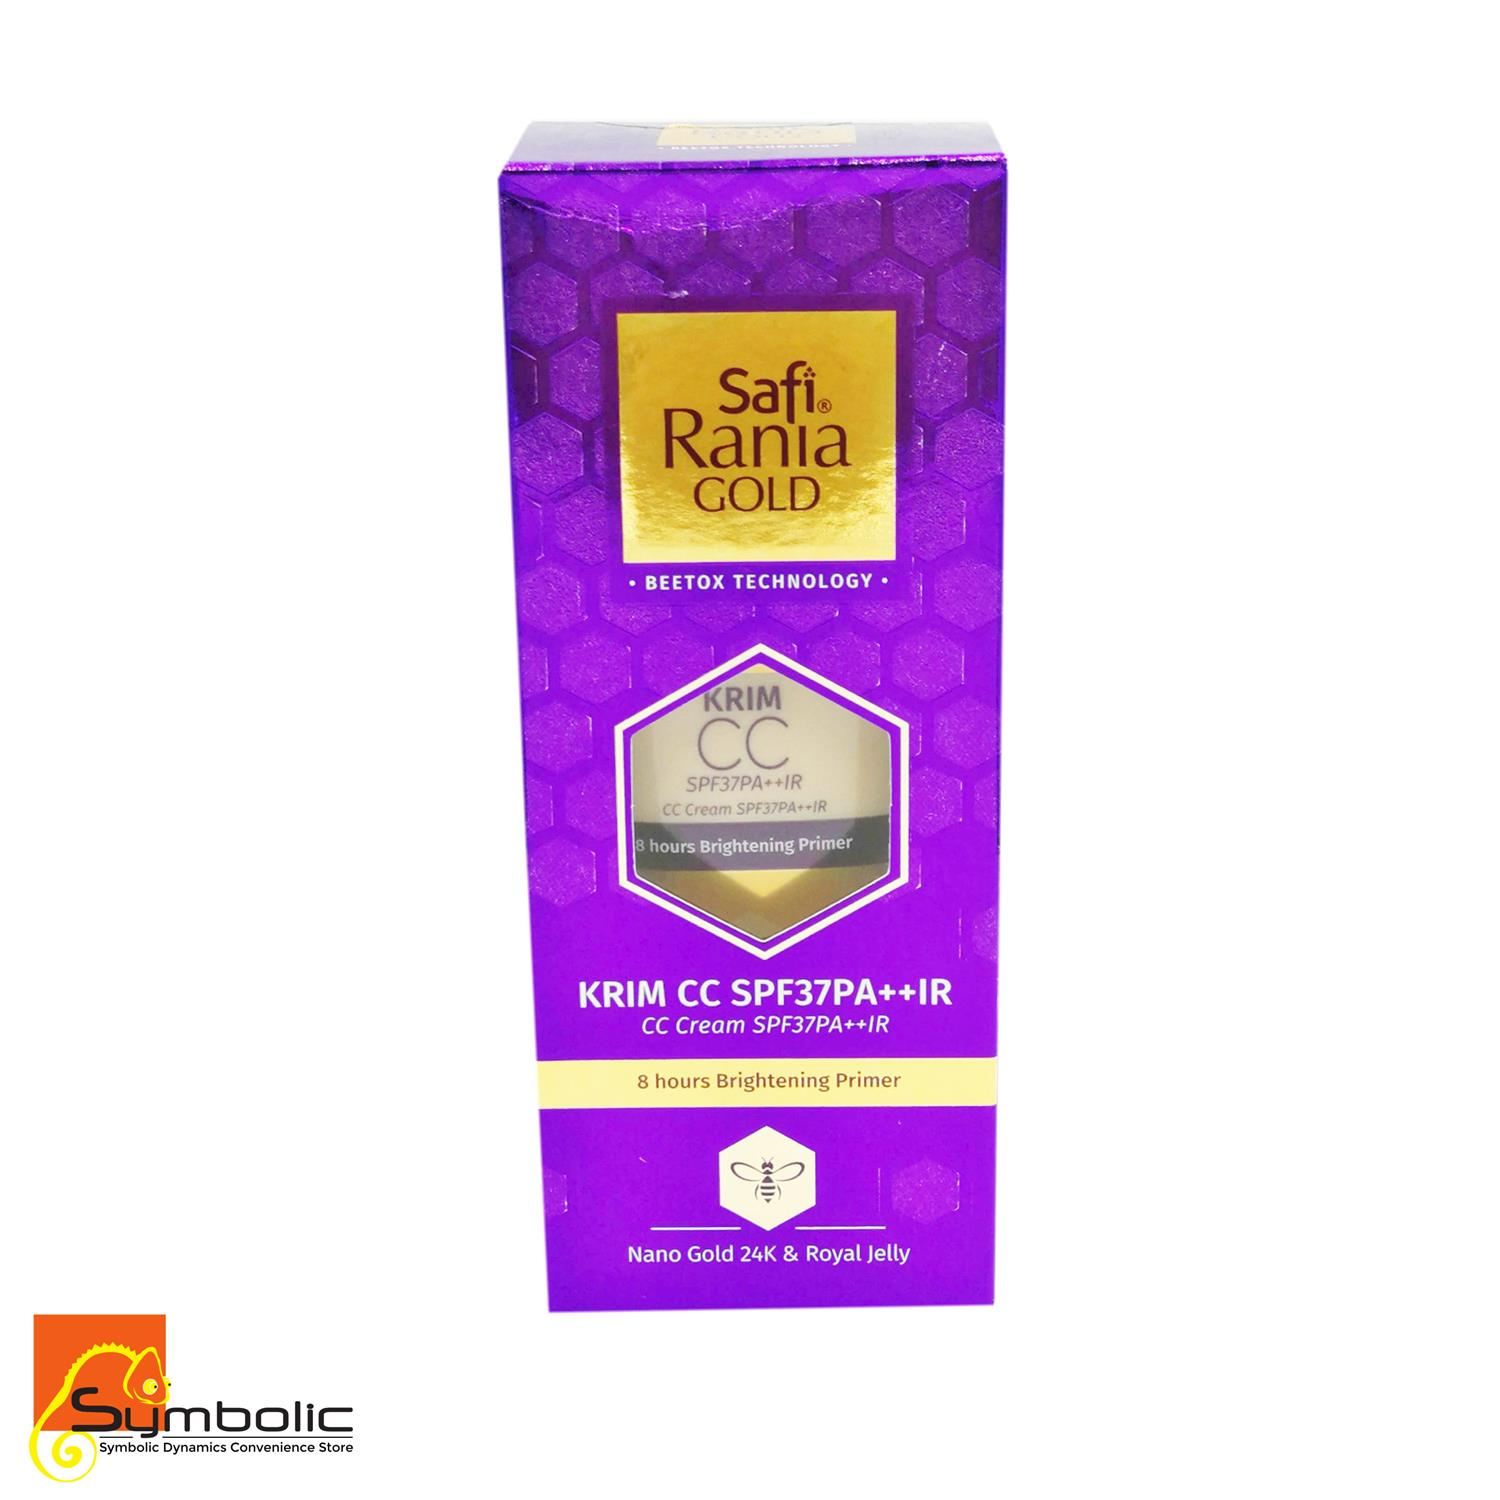 SAFI RANIA GOLD CC Cream SPF37PA++IR (Buy 3 Free Delivery)